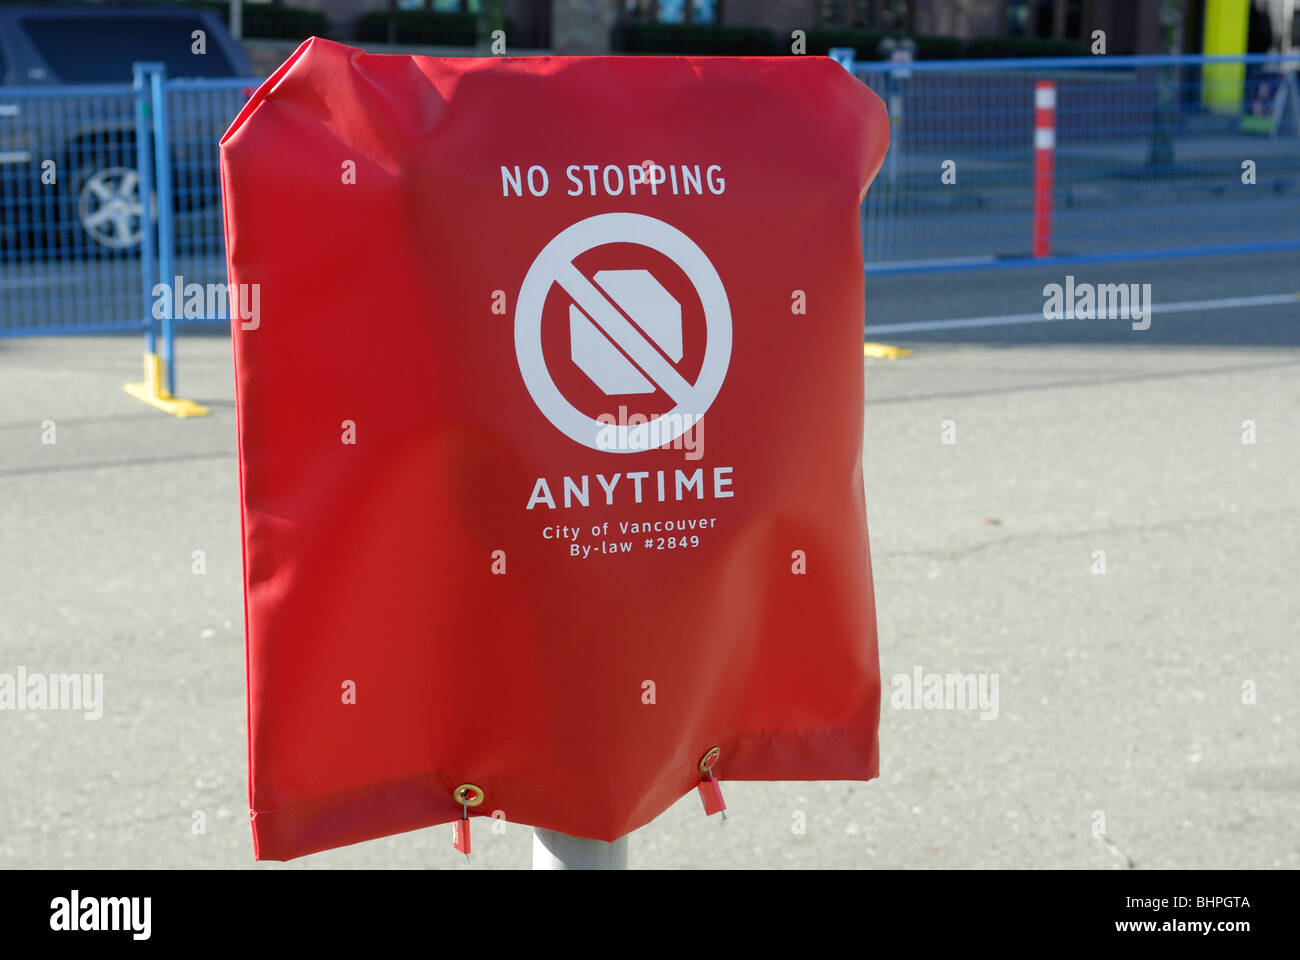 Street meter cover warning motorists that no parking or stopping is in effect. - Stock Image